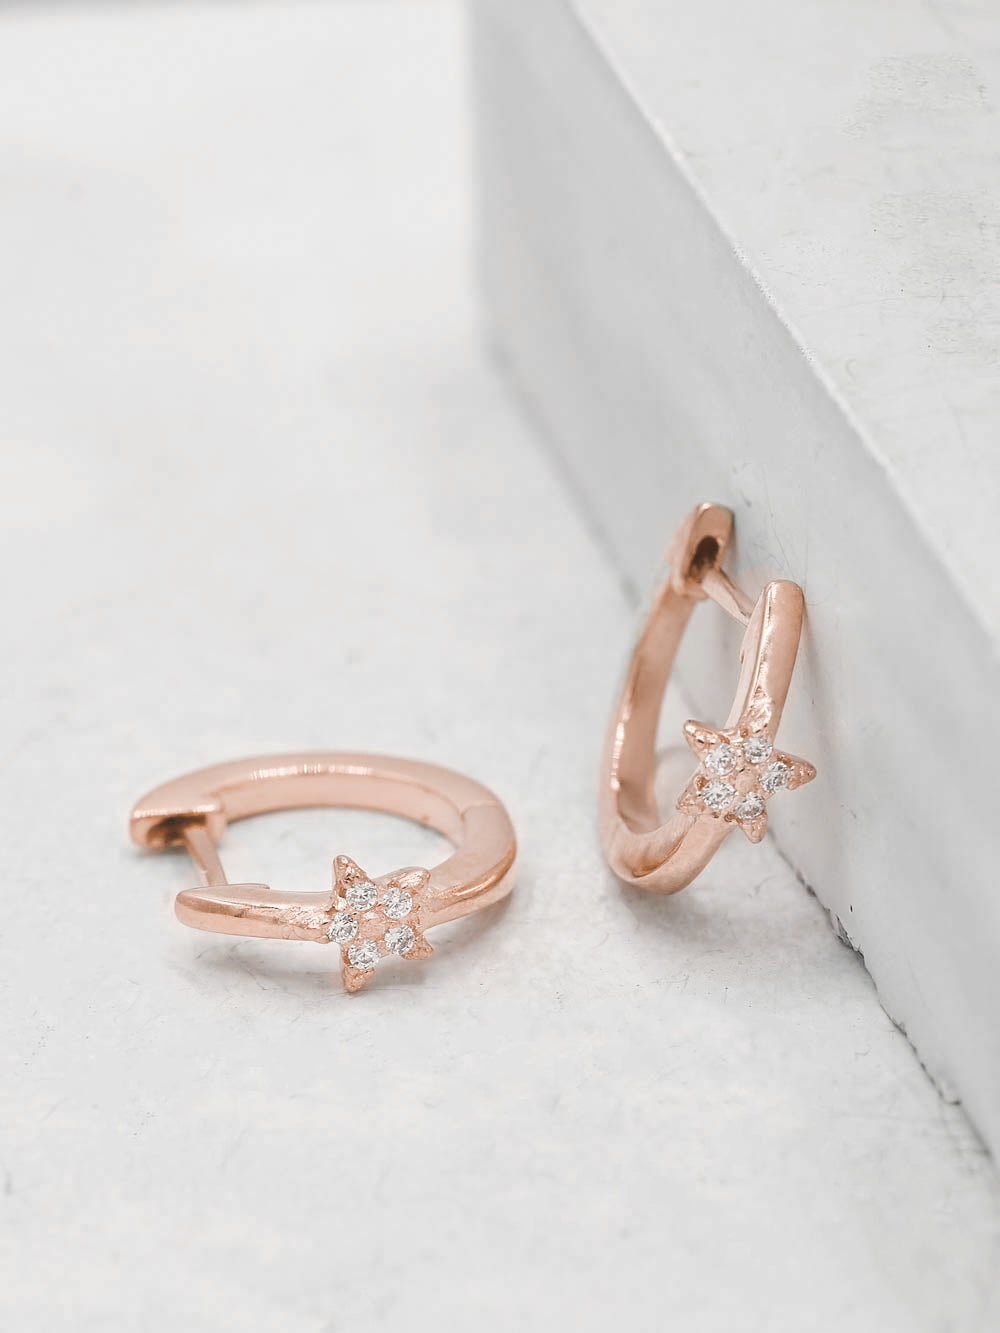 Rose Gold Plated Brass Mini Star with White  CZ Cubic Zirconia Hoop Huggies Dainty Earring by The Faint Hearted Jewelry